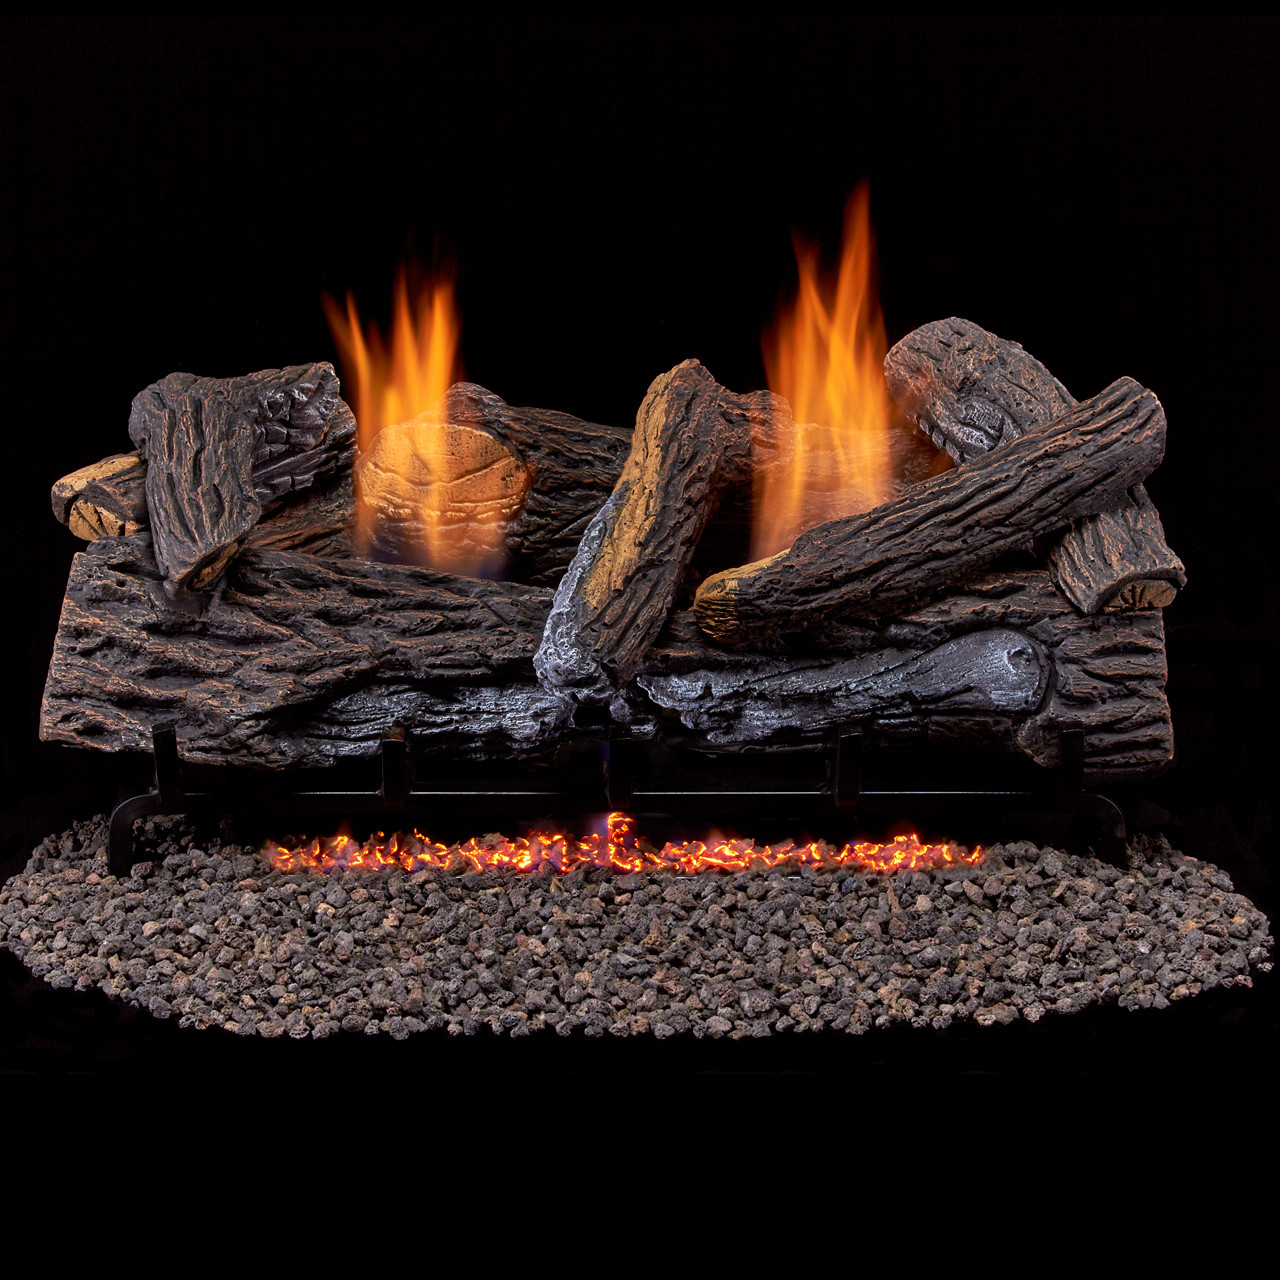 How Much Do Gas Fireplace Logs Cost Gas Log Gas Log Sets Fireplace Log Sets Factory Buys Direct